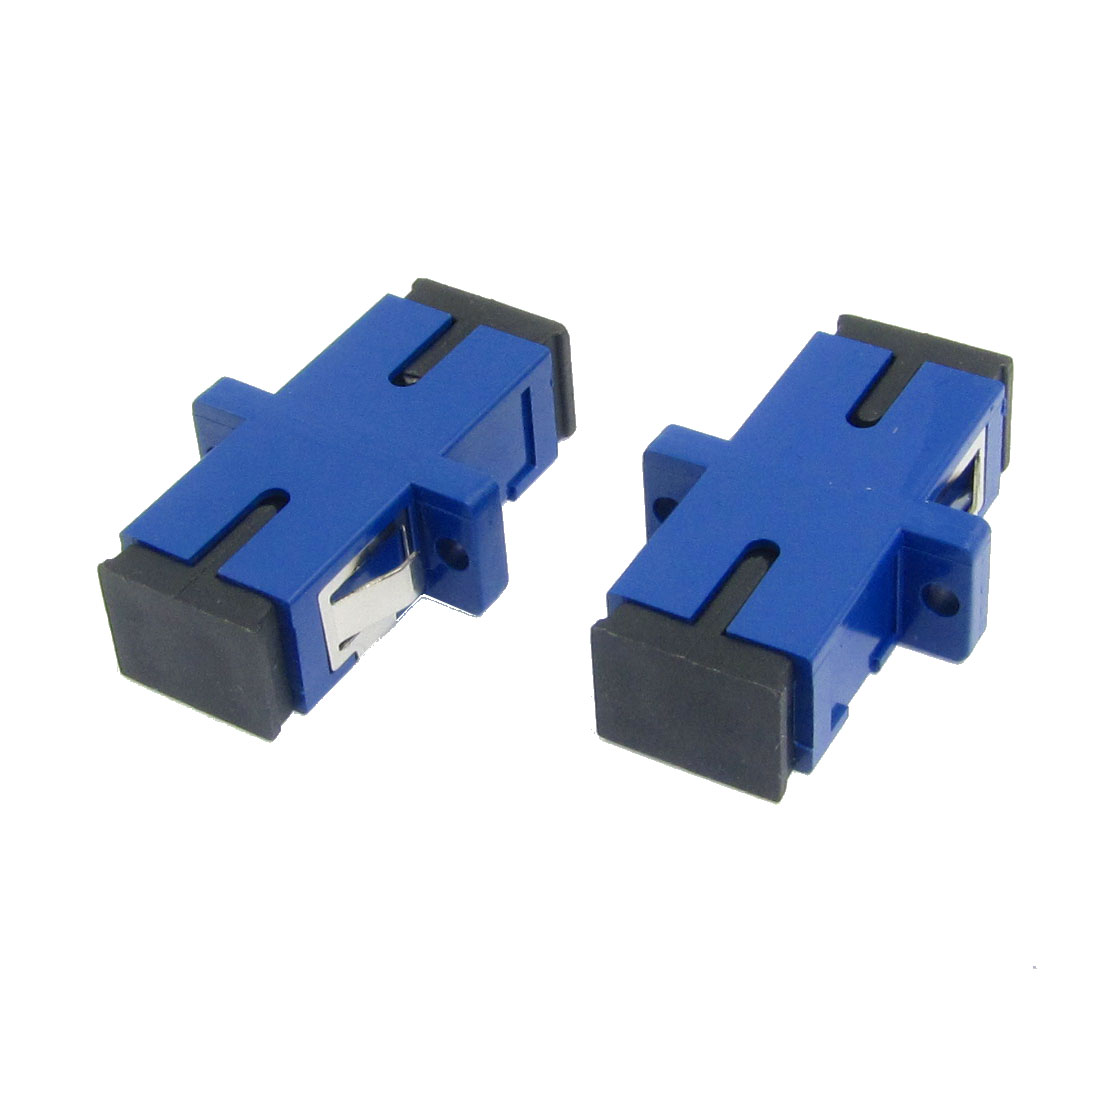 2 x Blue SC/SC Multimode Simplex Flange Fiber Optical Connector Adapter Coupler